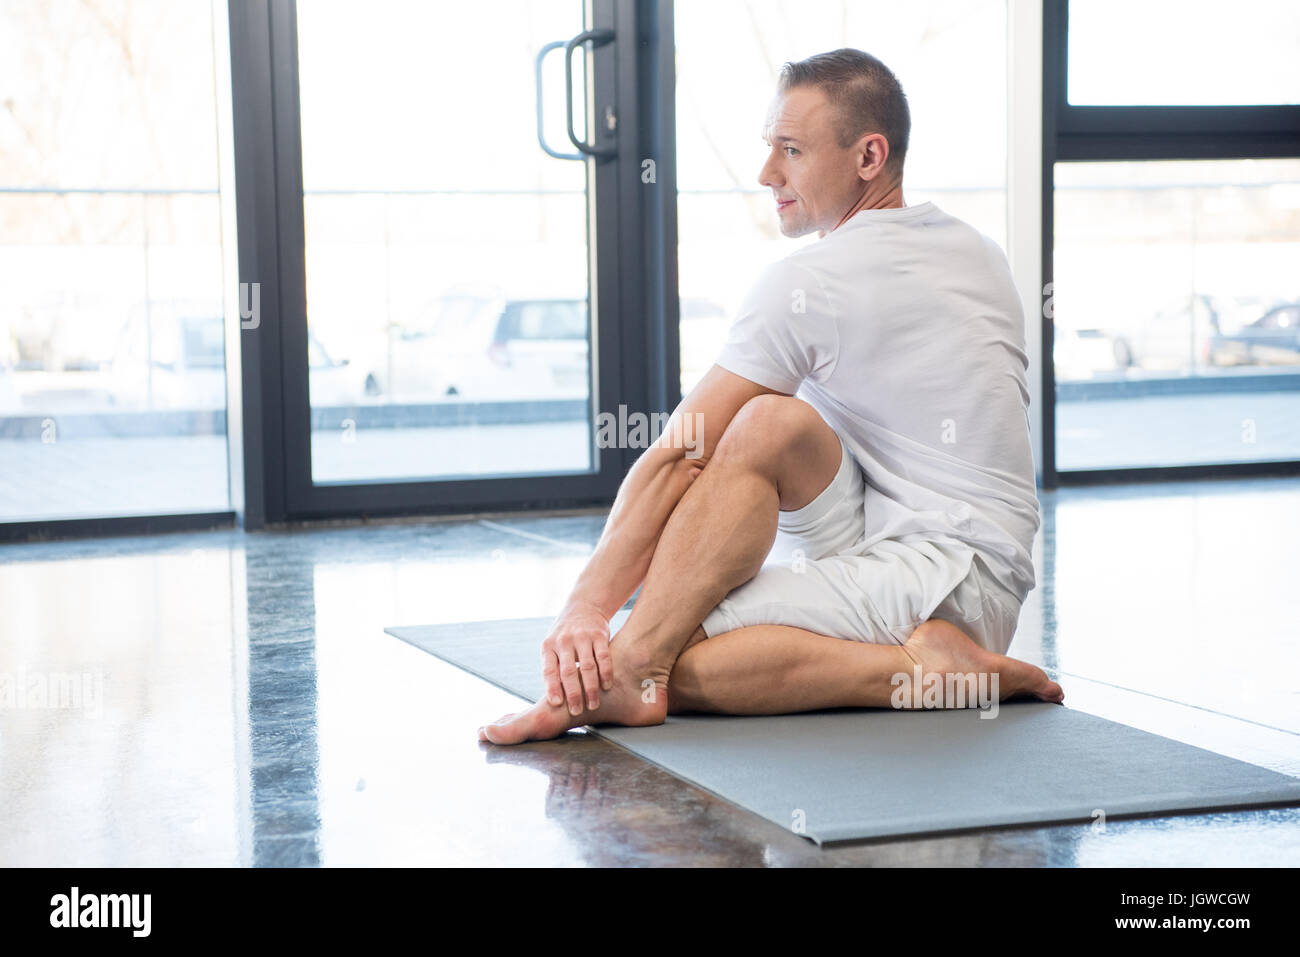 sportsman in half spinal twist pose sitting on yoga mat in gym - Stock Image